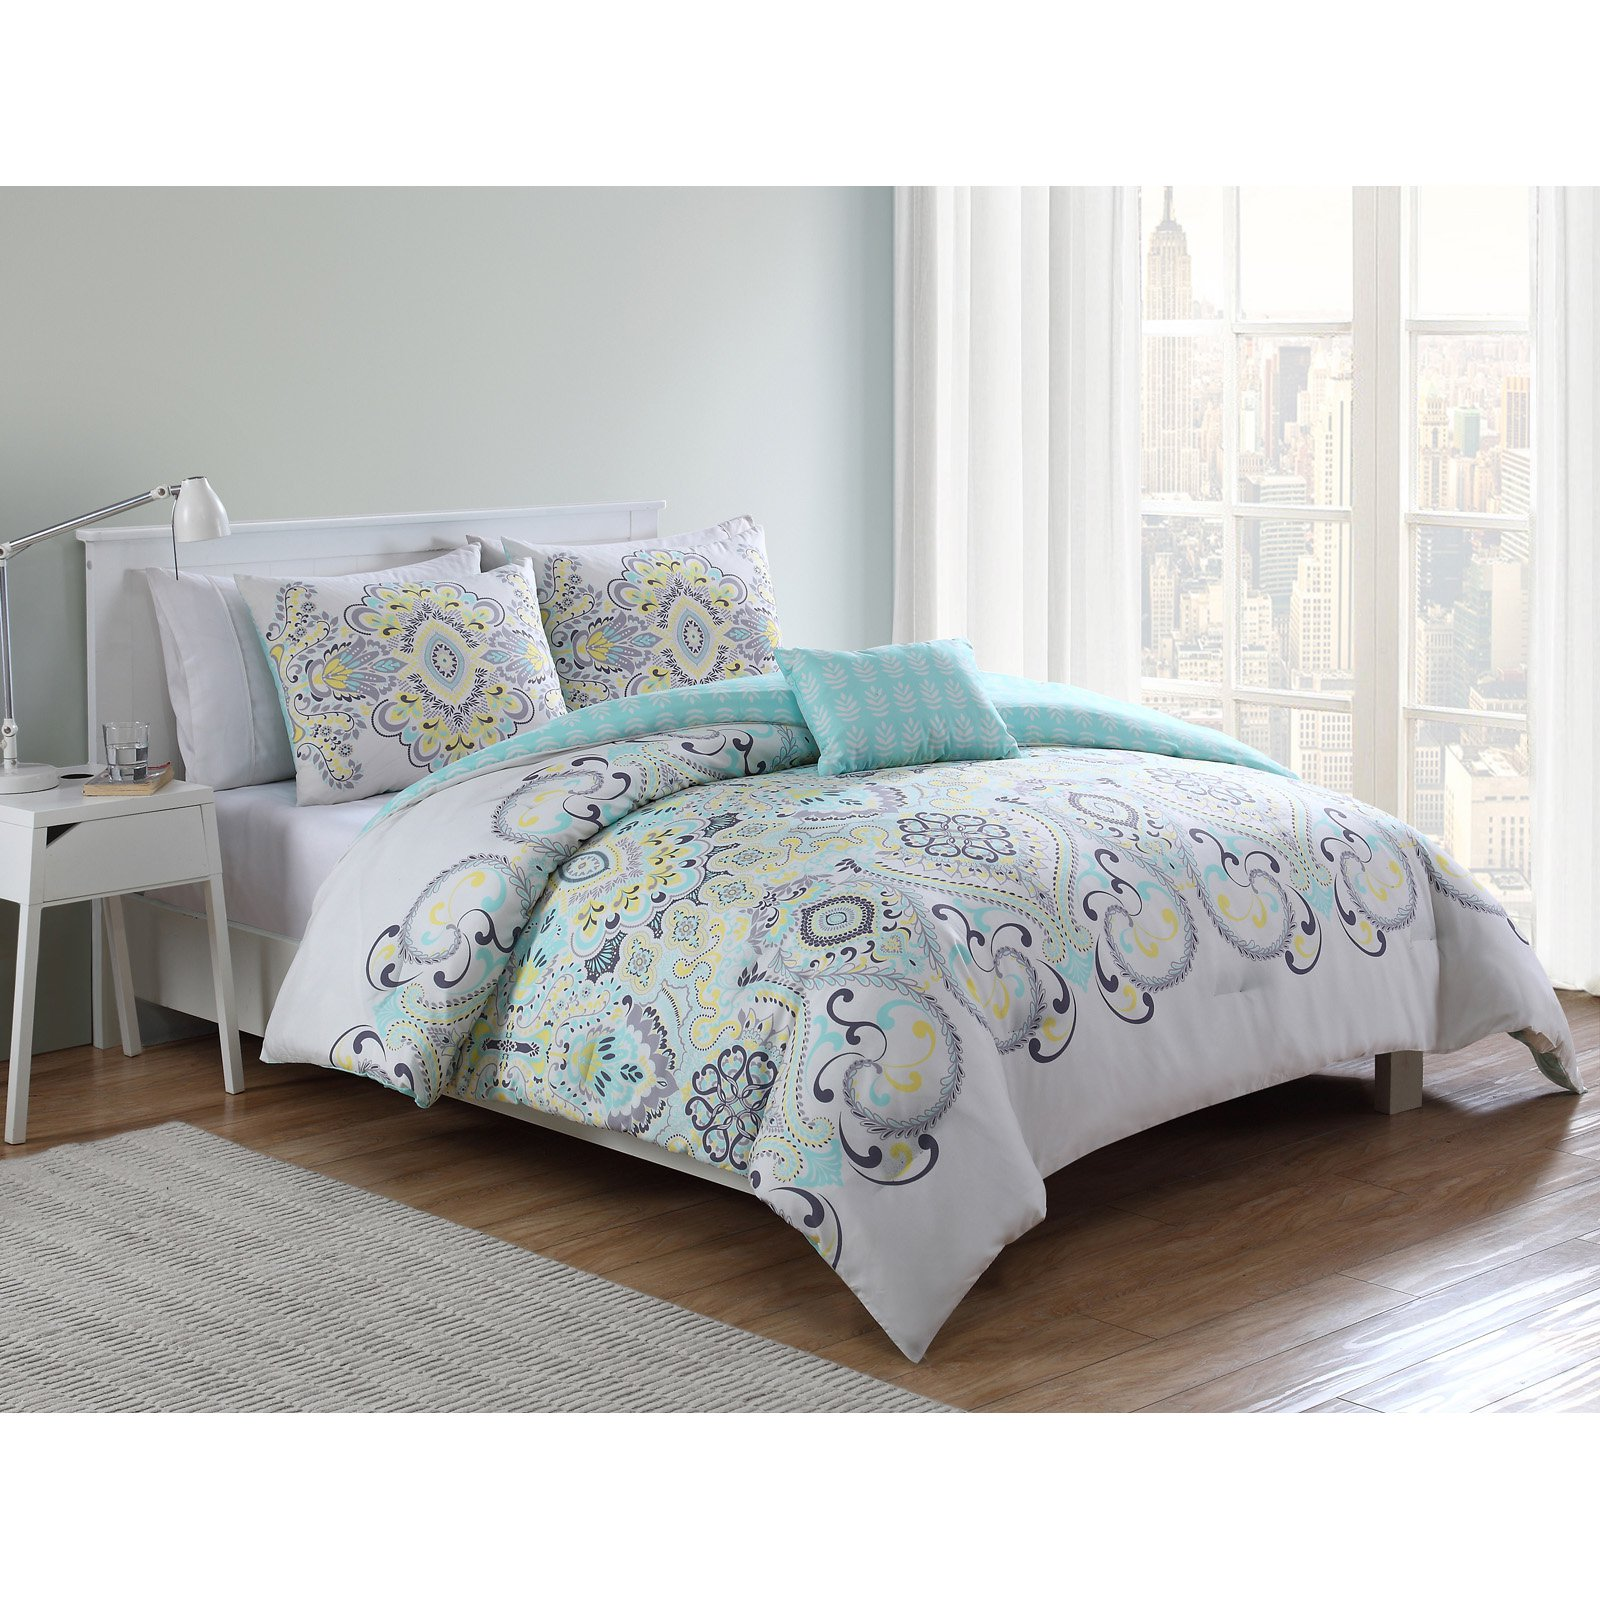 VCNY Home Yellow/Blue Amherst Printed 3/4 Piece Comforter Bedding Set, Shams and Decorative Pillow Included